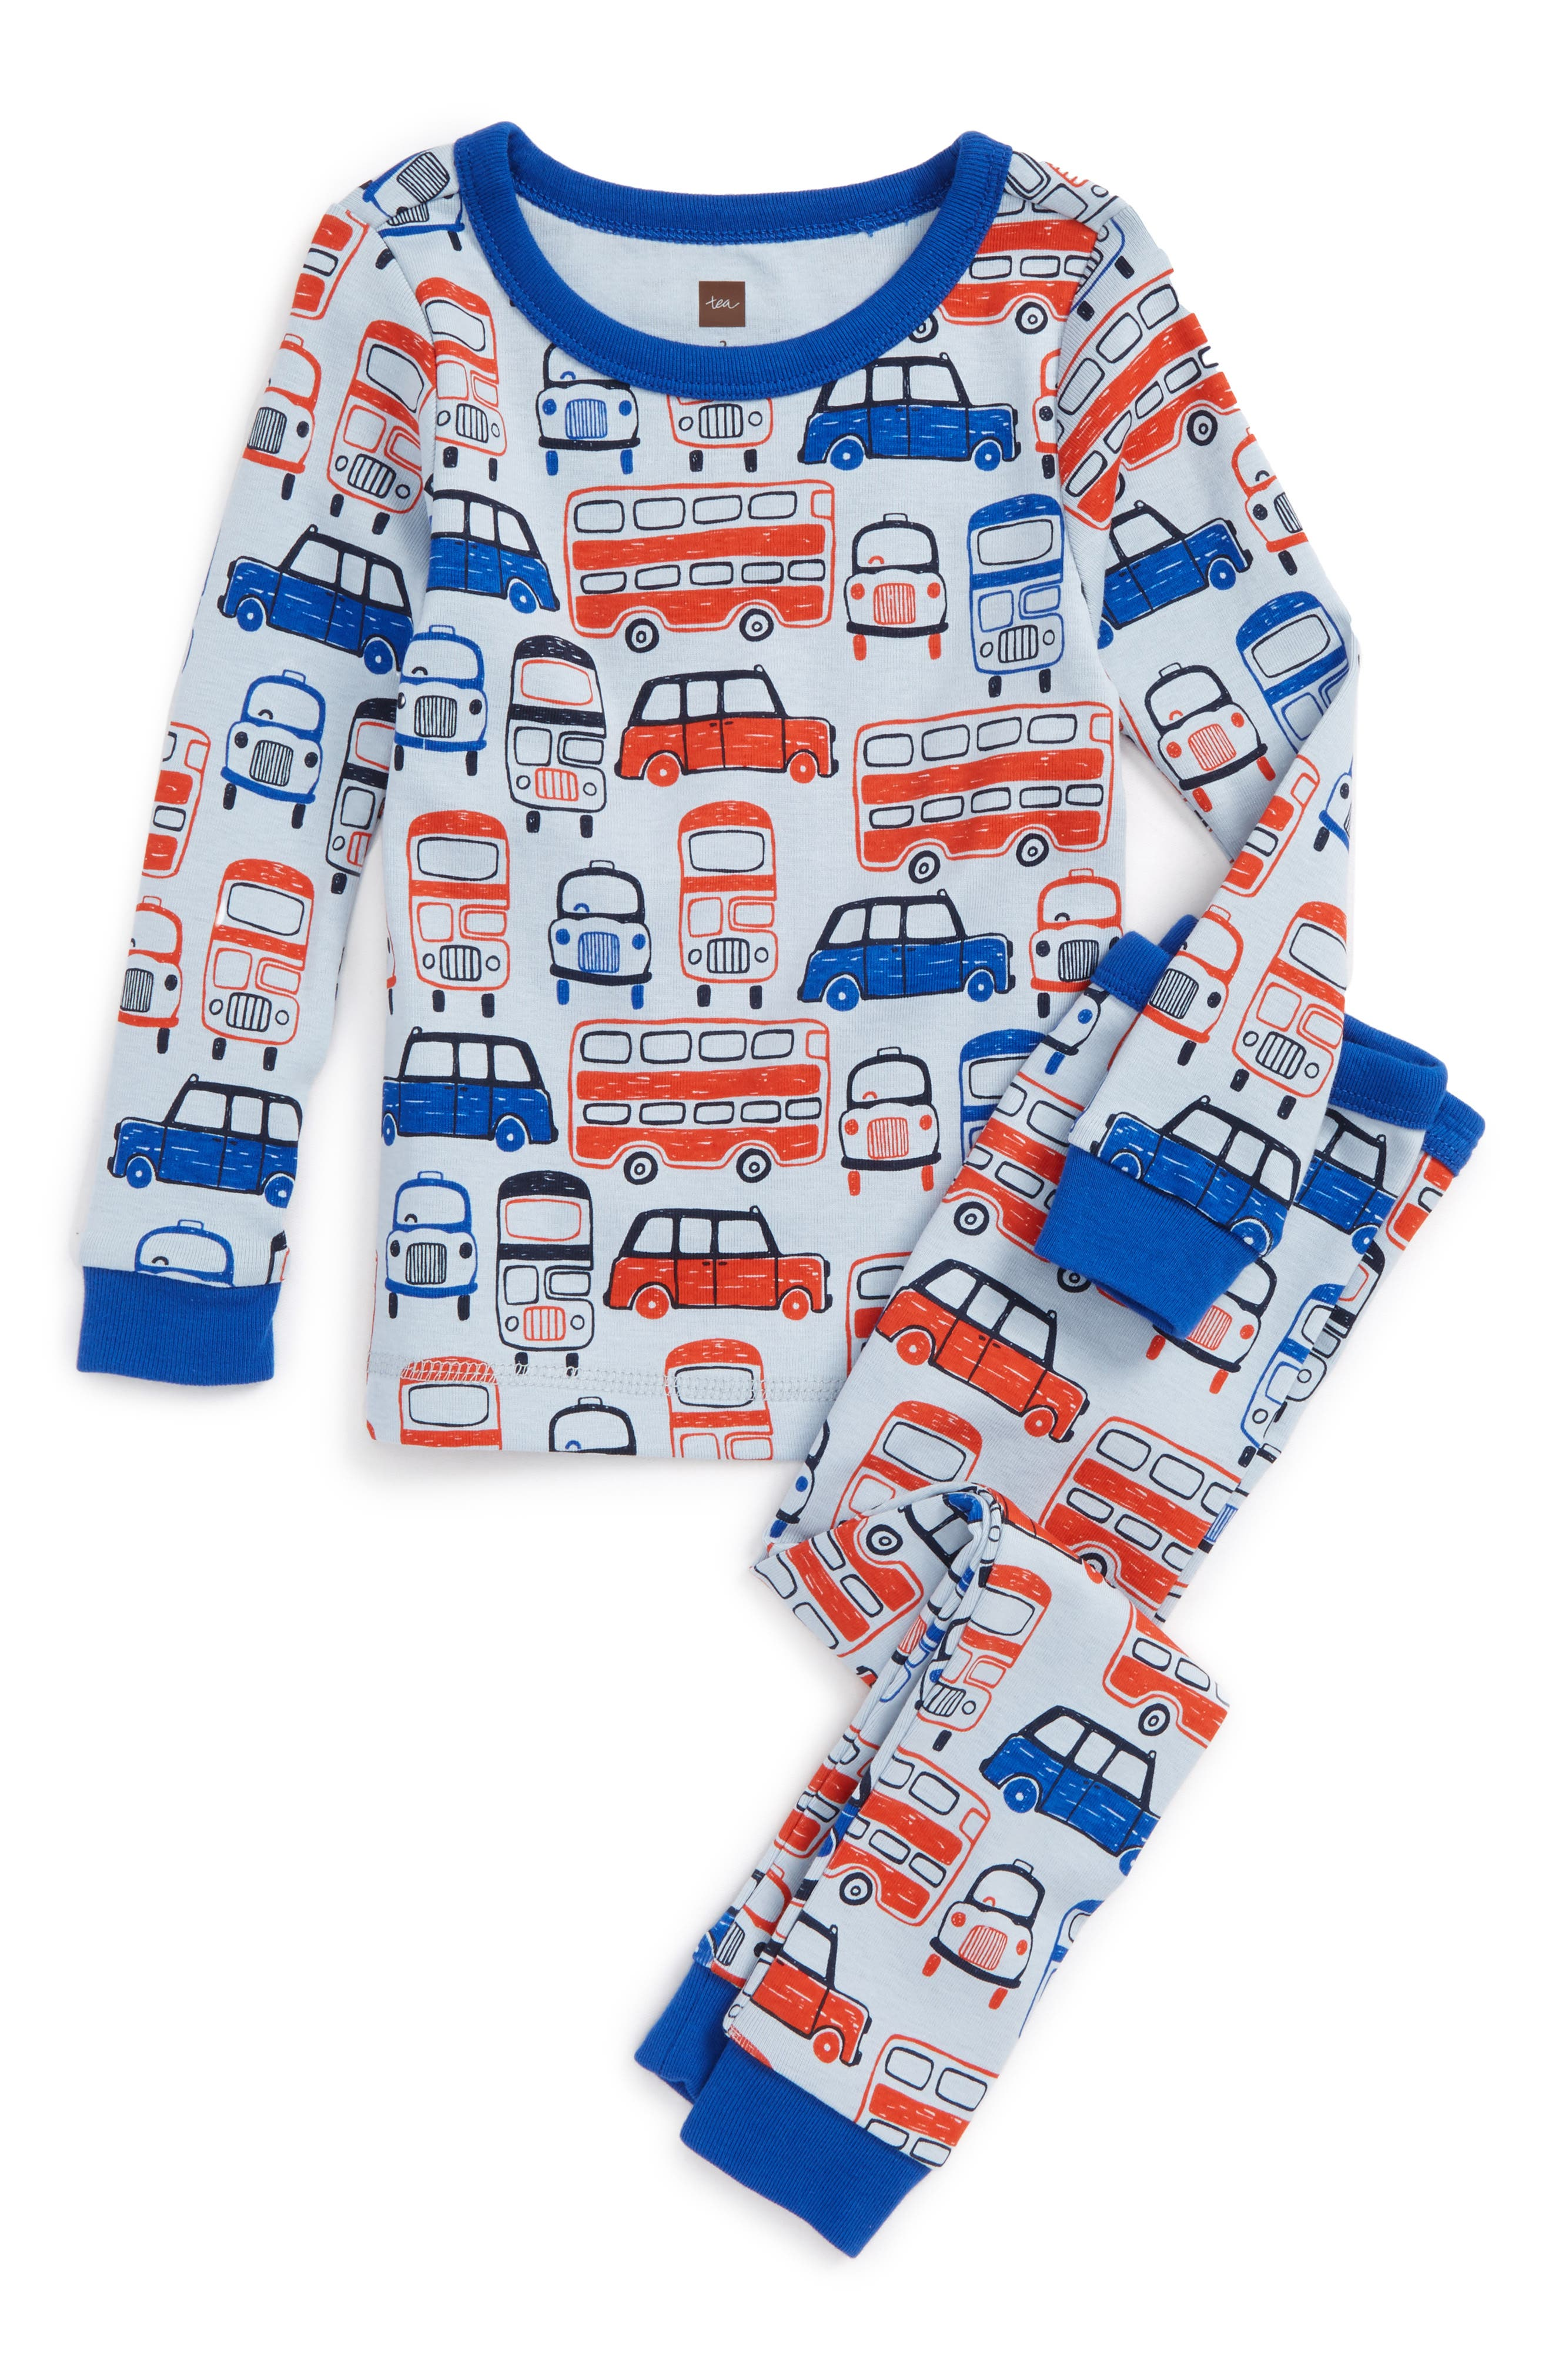 Alternate Image 1 Selected - Tea Collection Waverley Station Fitted Two-Piece Pajamas (Toddler Boys, Little Boys & Big Boys)